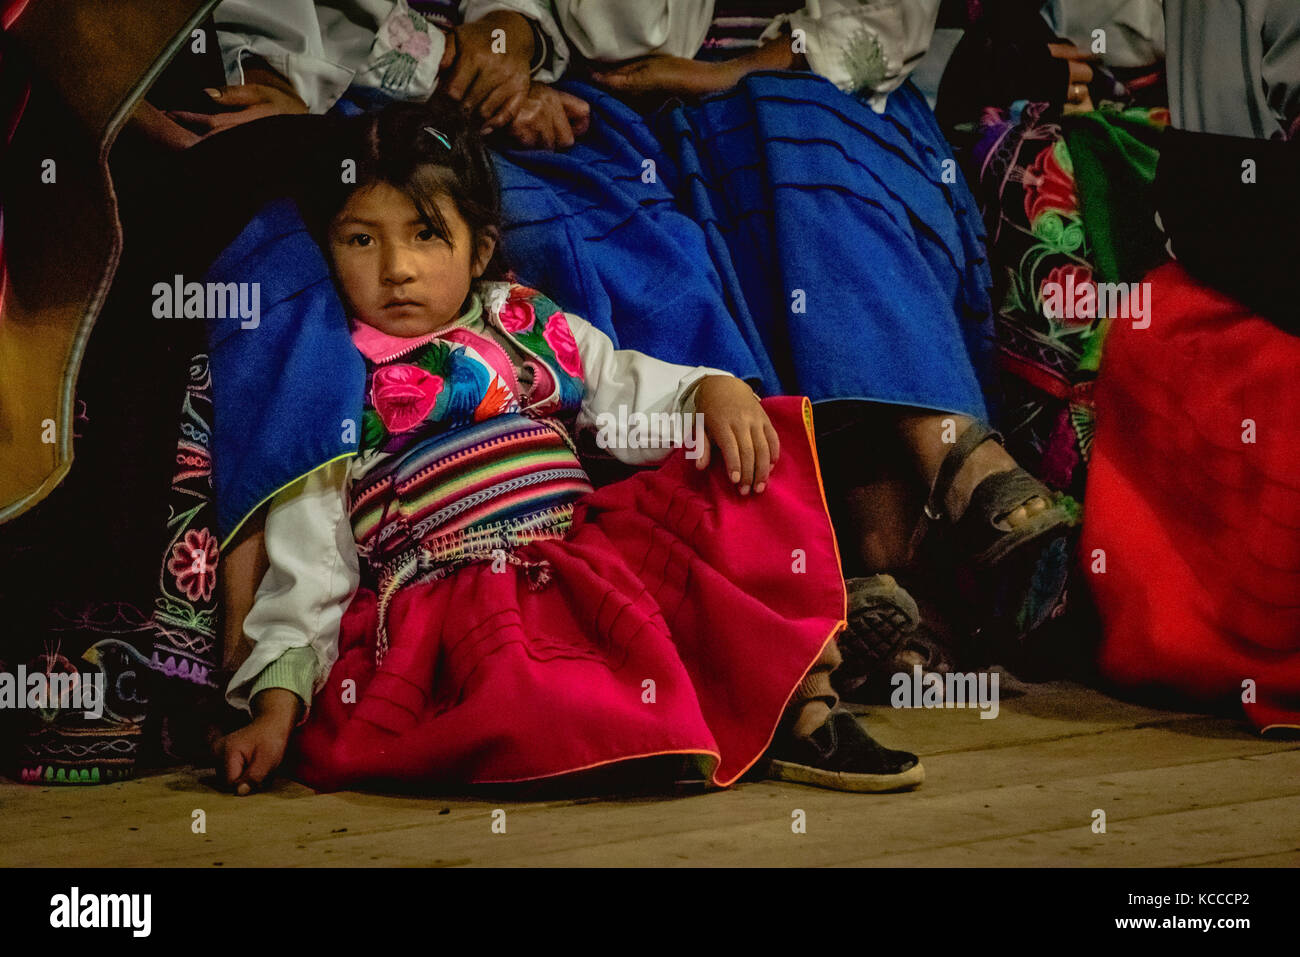 Cute Peruvian girl sat in traditional dress - Stock Image